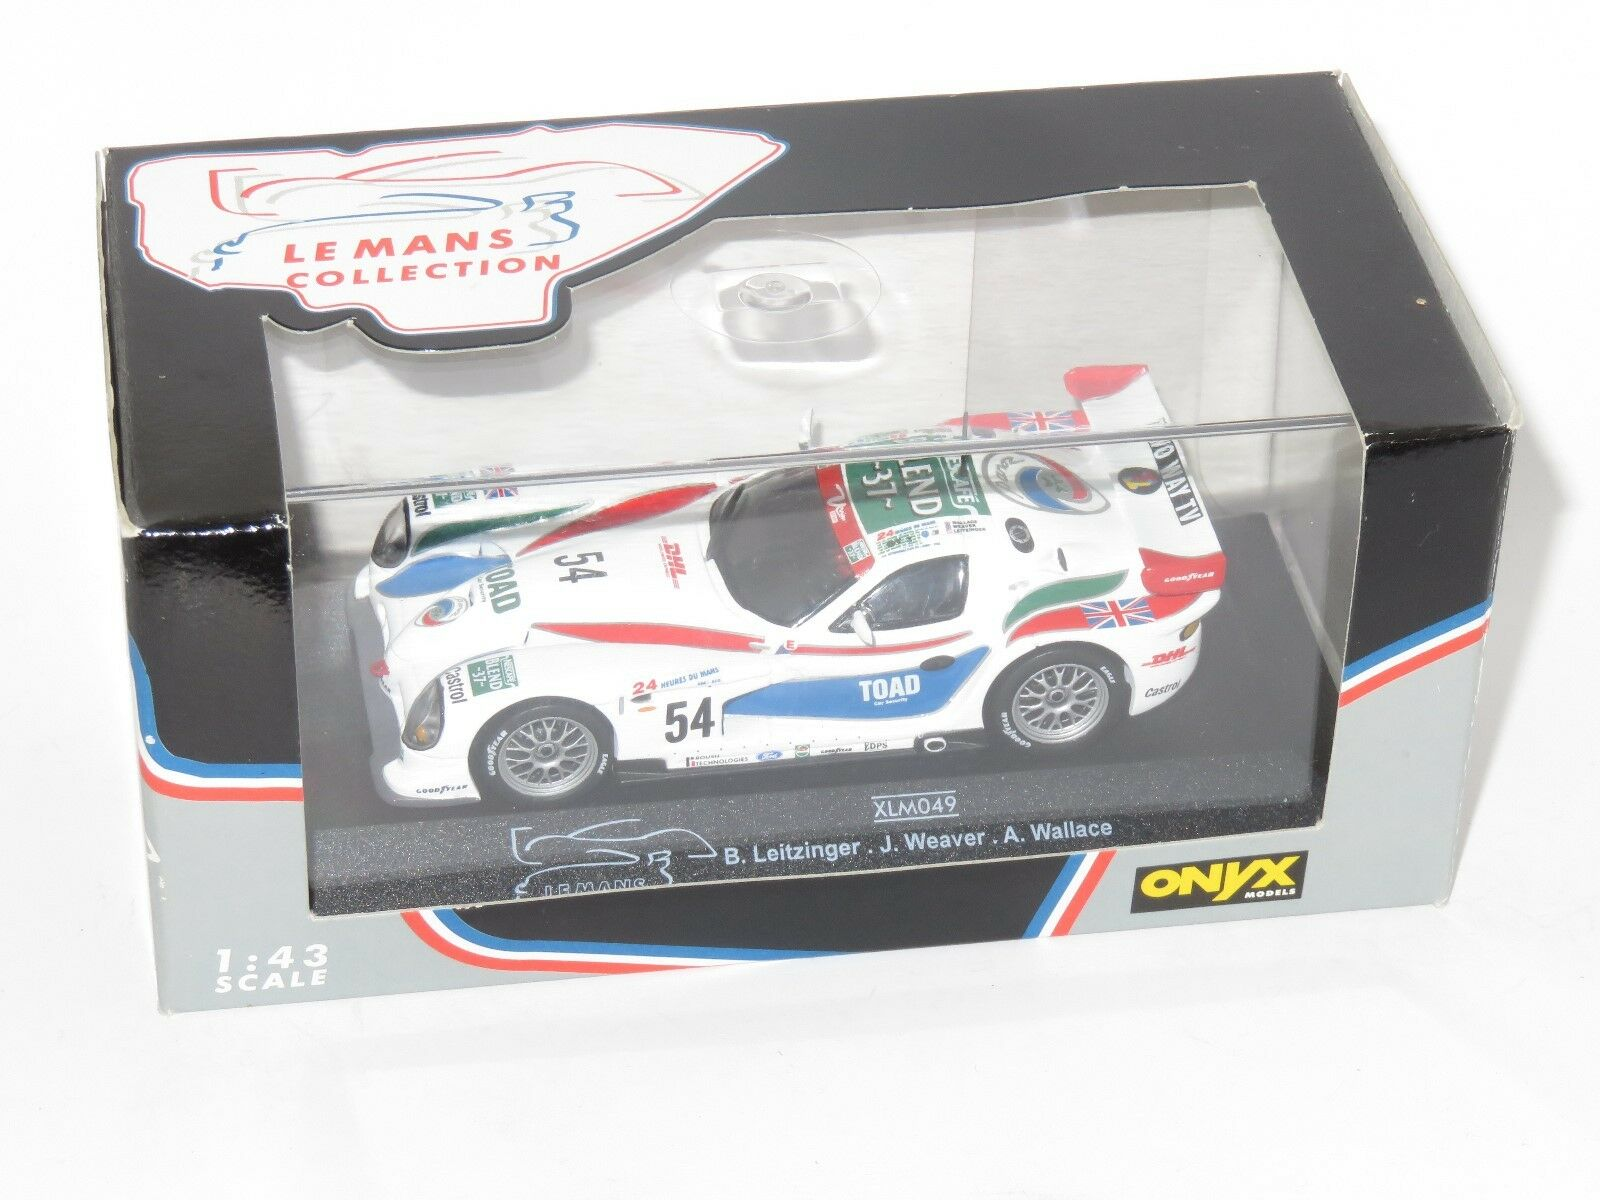 1 1 1 43 Panoz Ligas GTR-1 Le Mans 24 HRS 1997  54 David Price Racing eb4df2